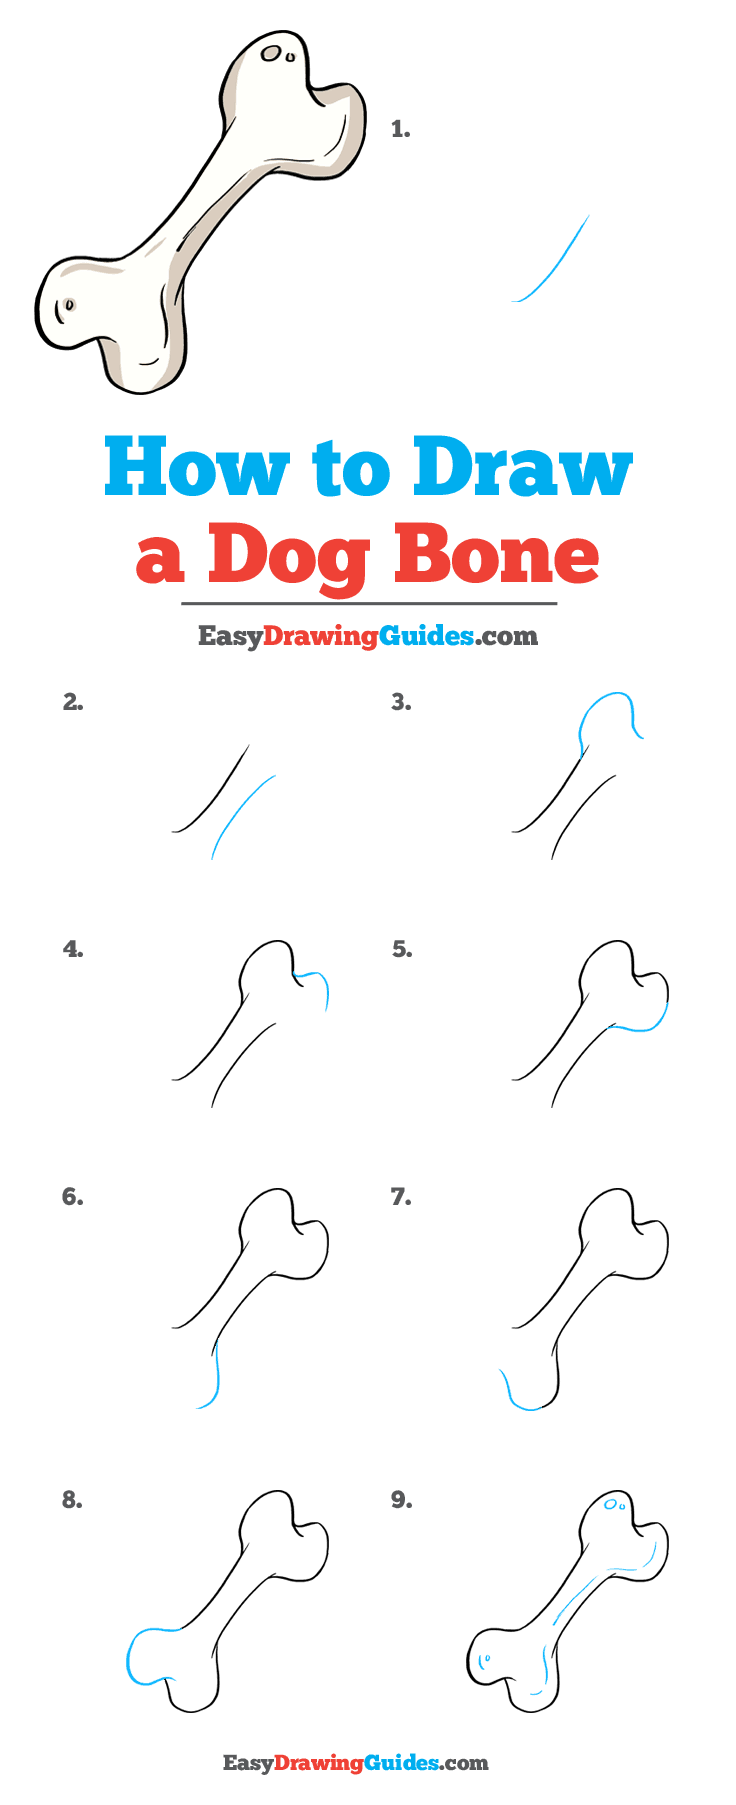 How to Draw Dog Bone